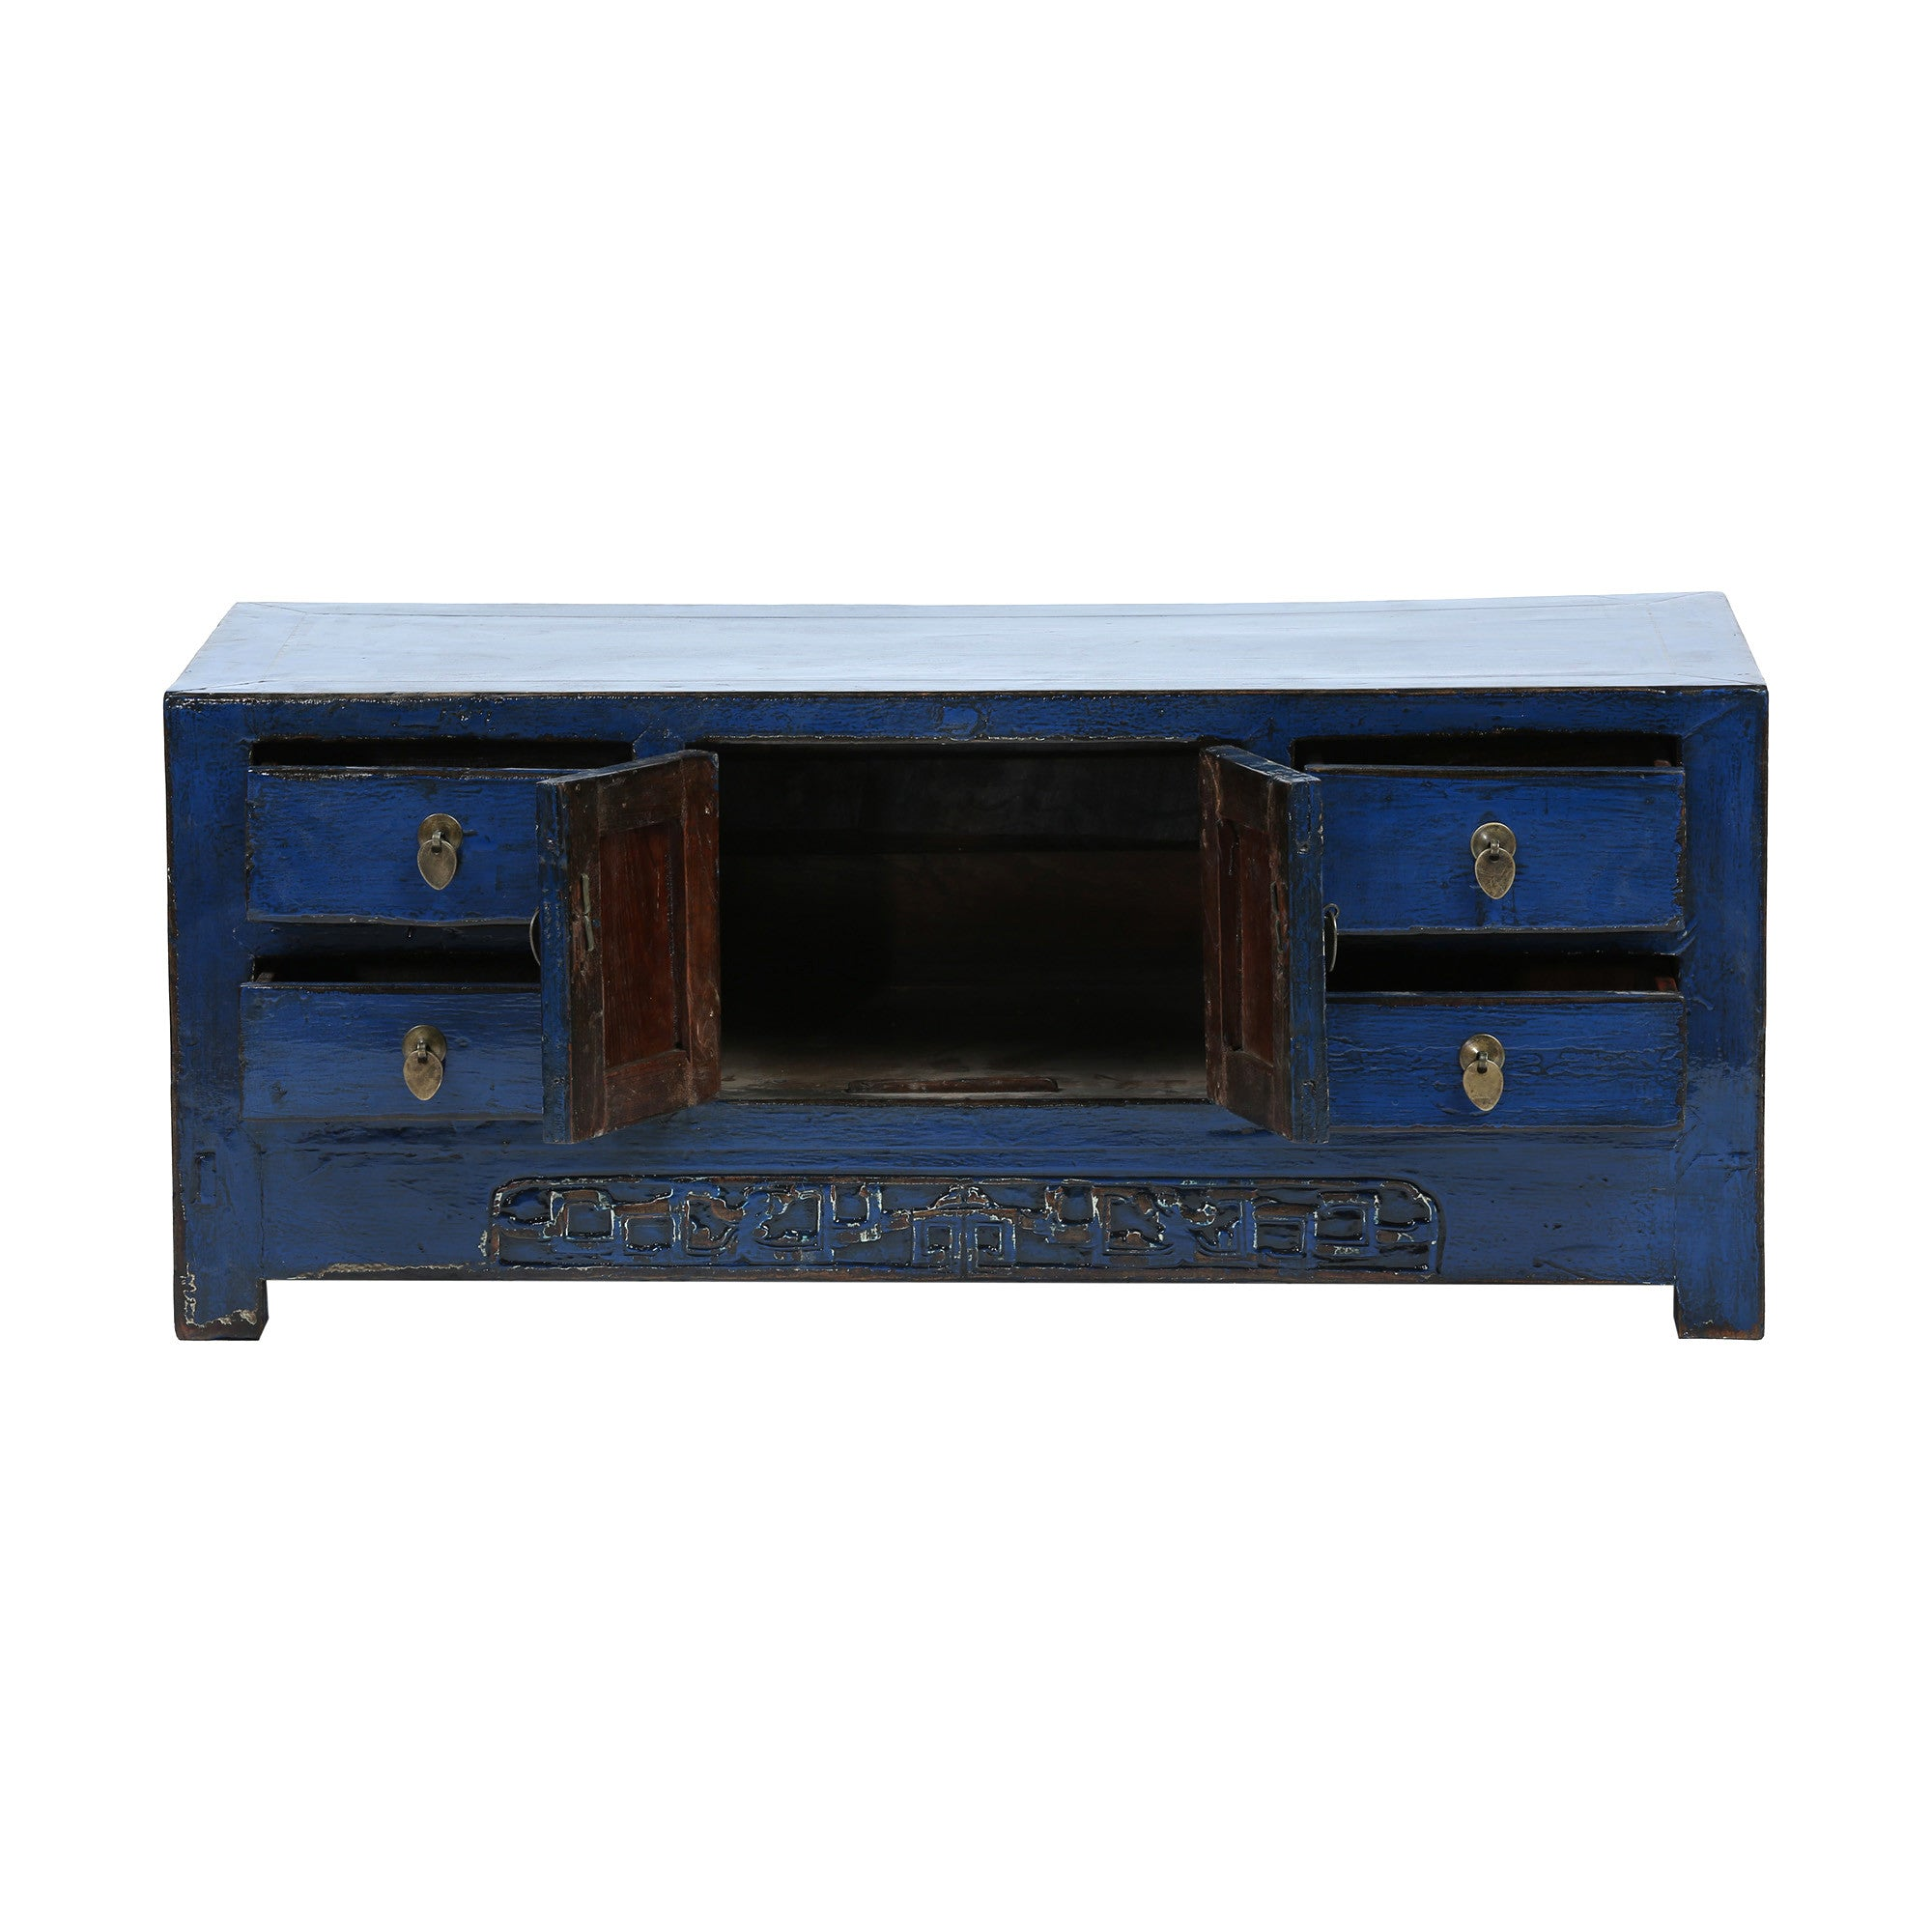 Low Blue Vintage Chinese Sideboard drawers and doors open